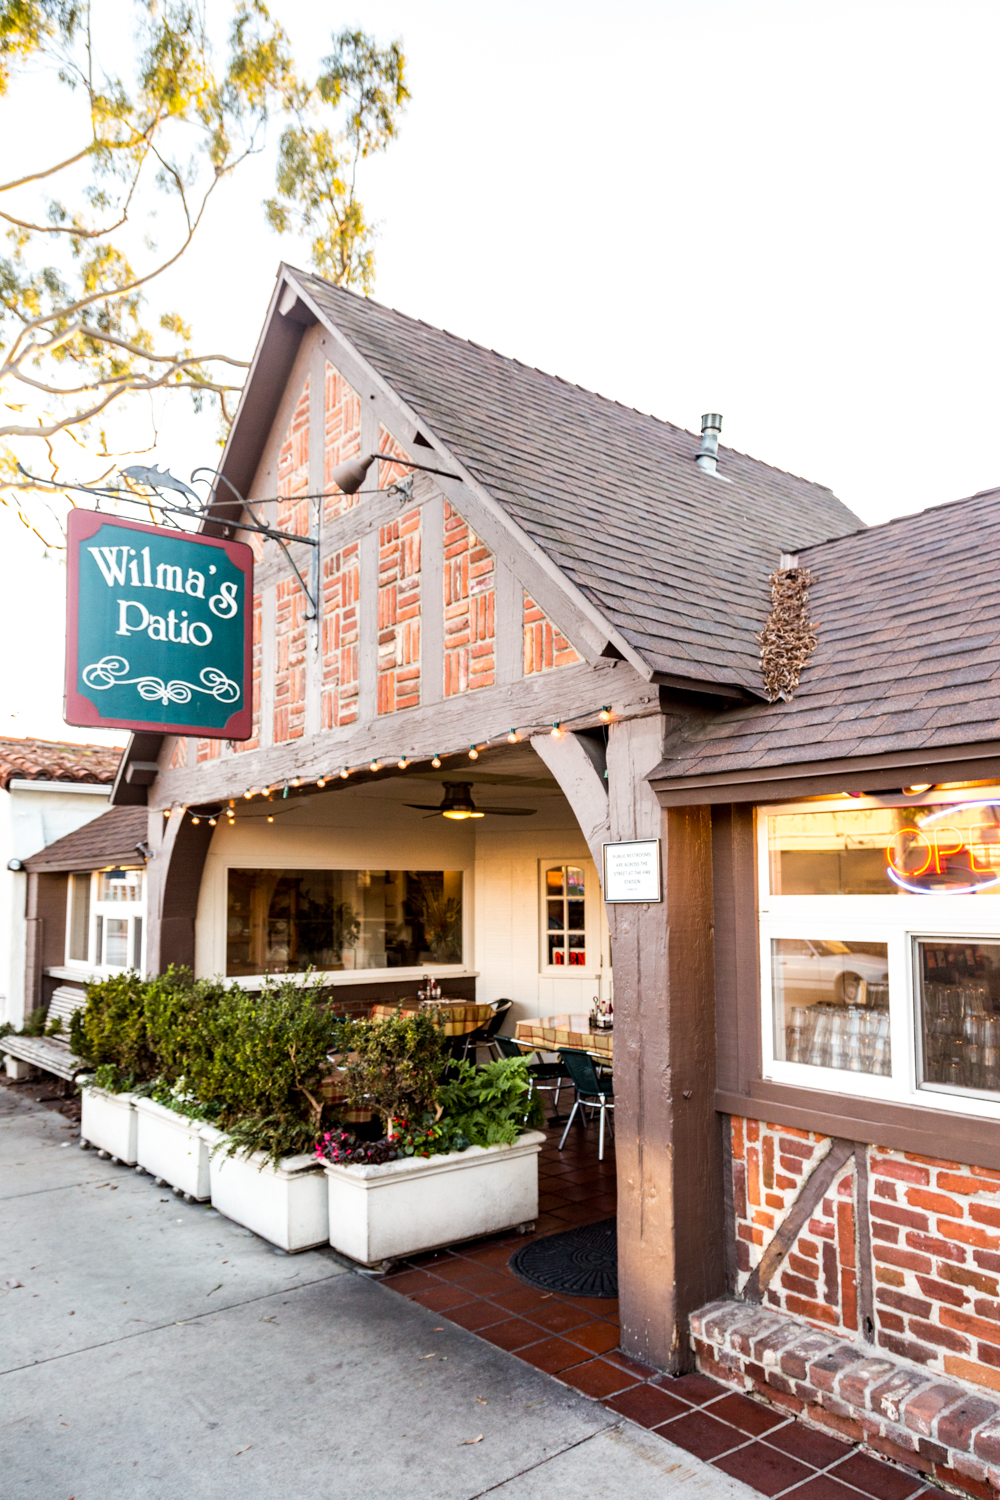 Wilma S Patio The Best Casual Neighborhood Eats In Newport Beach Come For The Food Stay For The Family